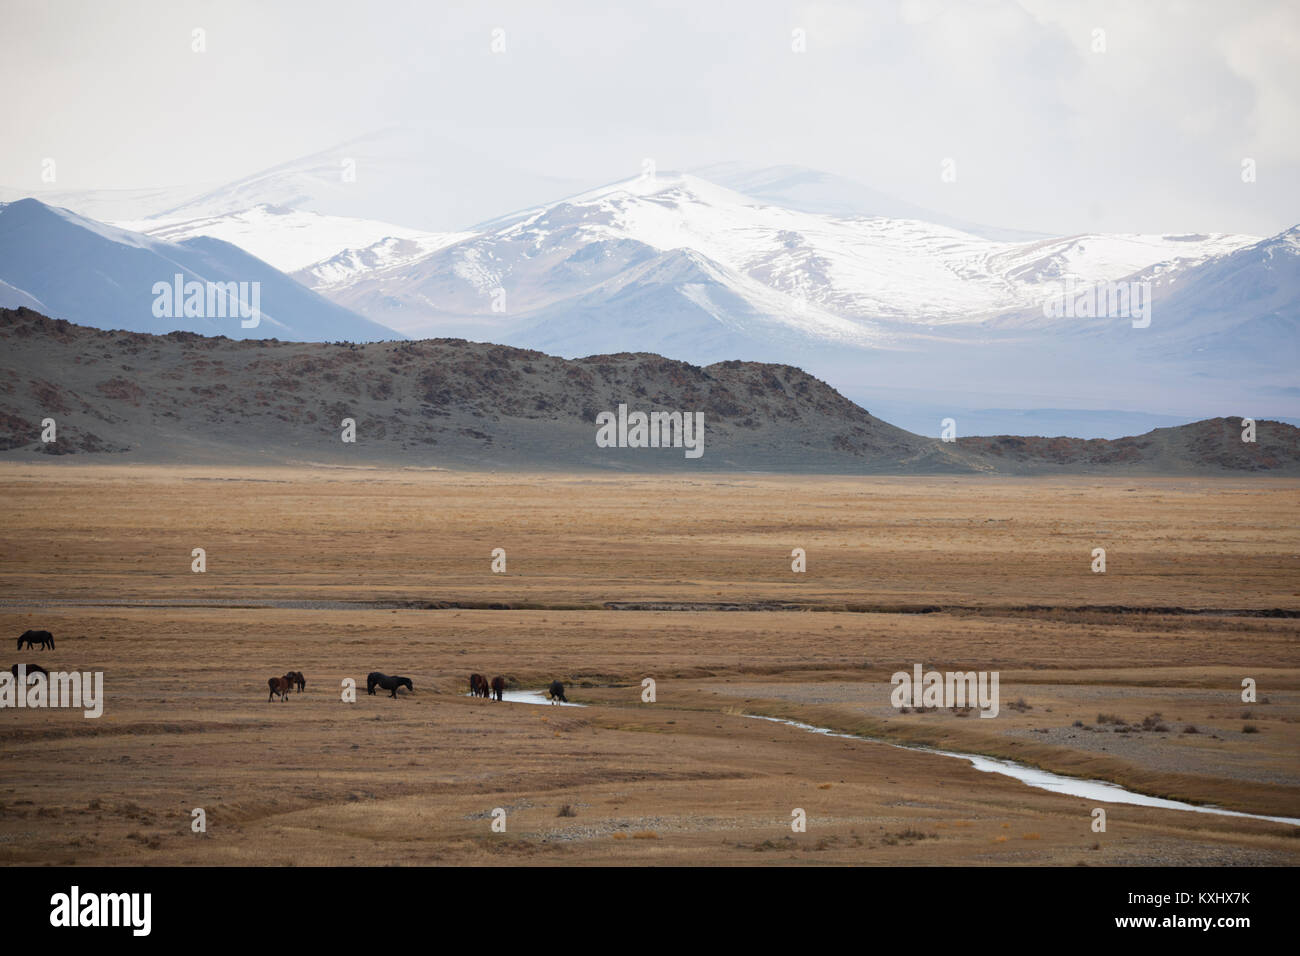 Mongolian landscape snowy mountains snow winter wild horses drinking from river Mongolia - Stock Image